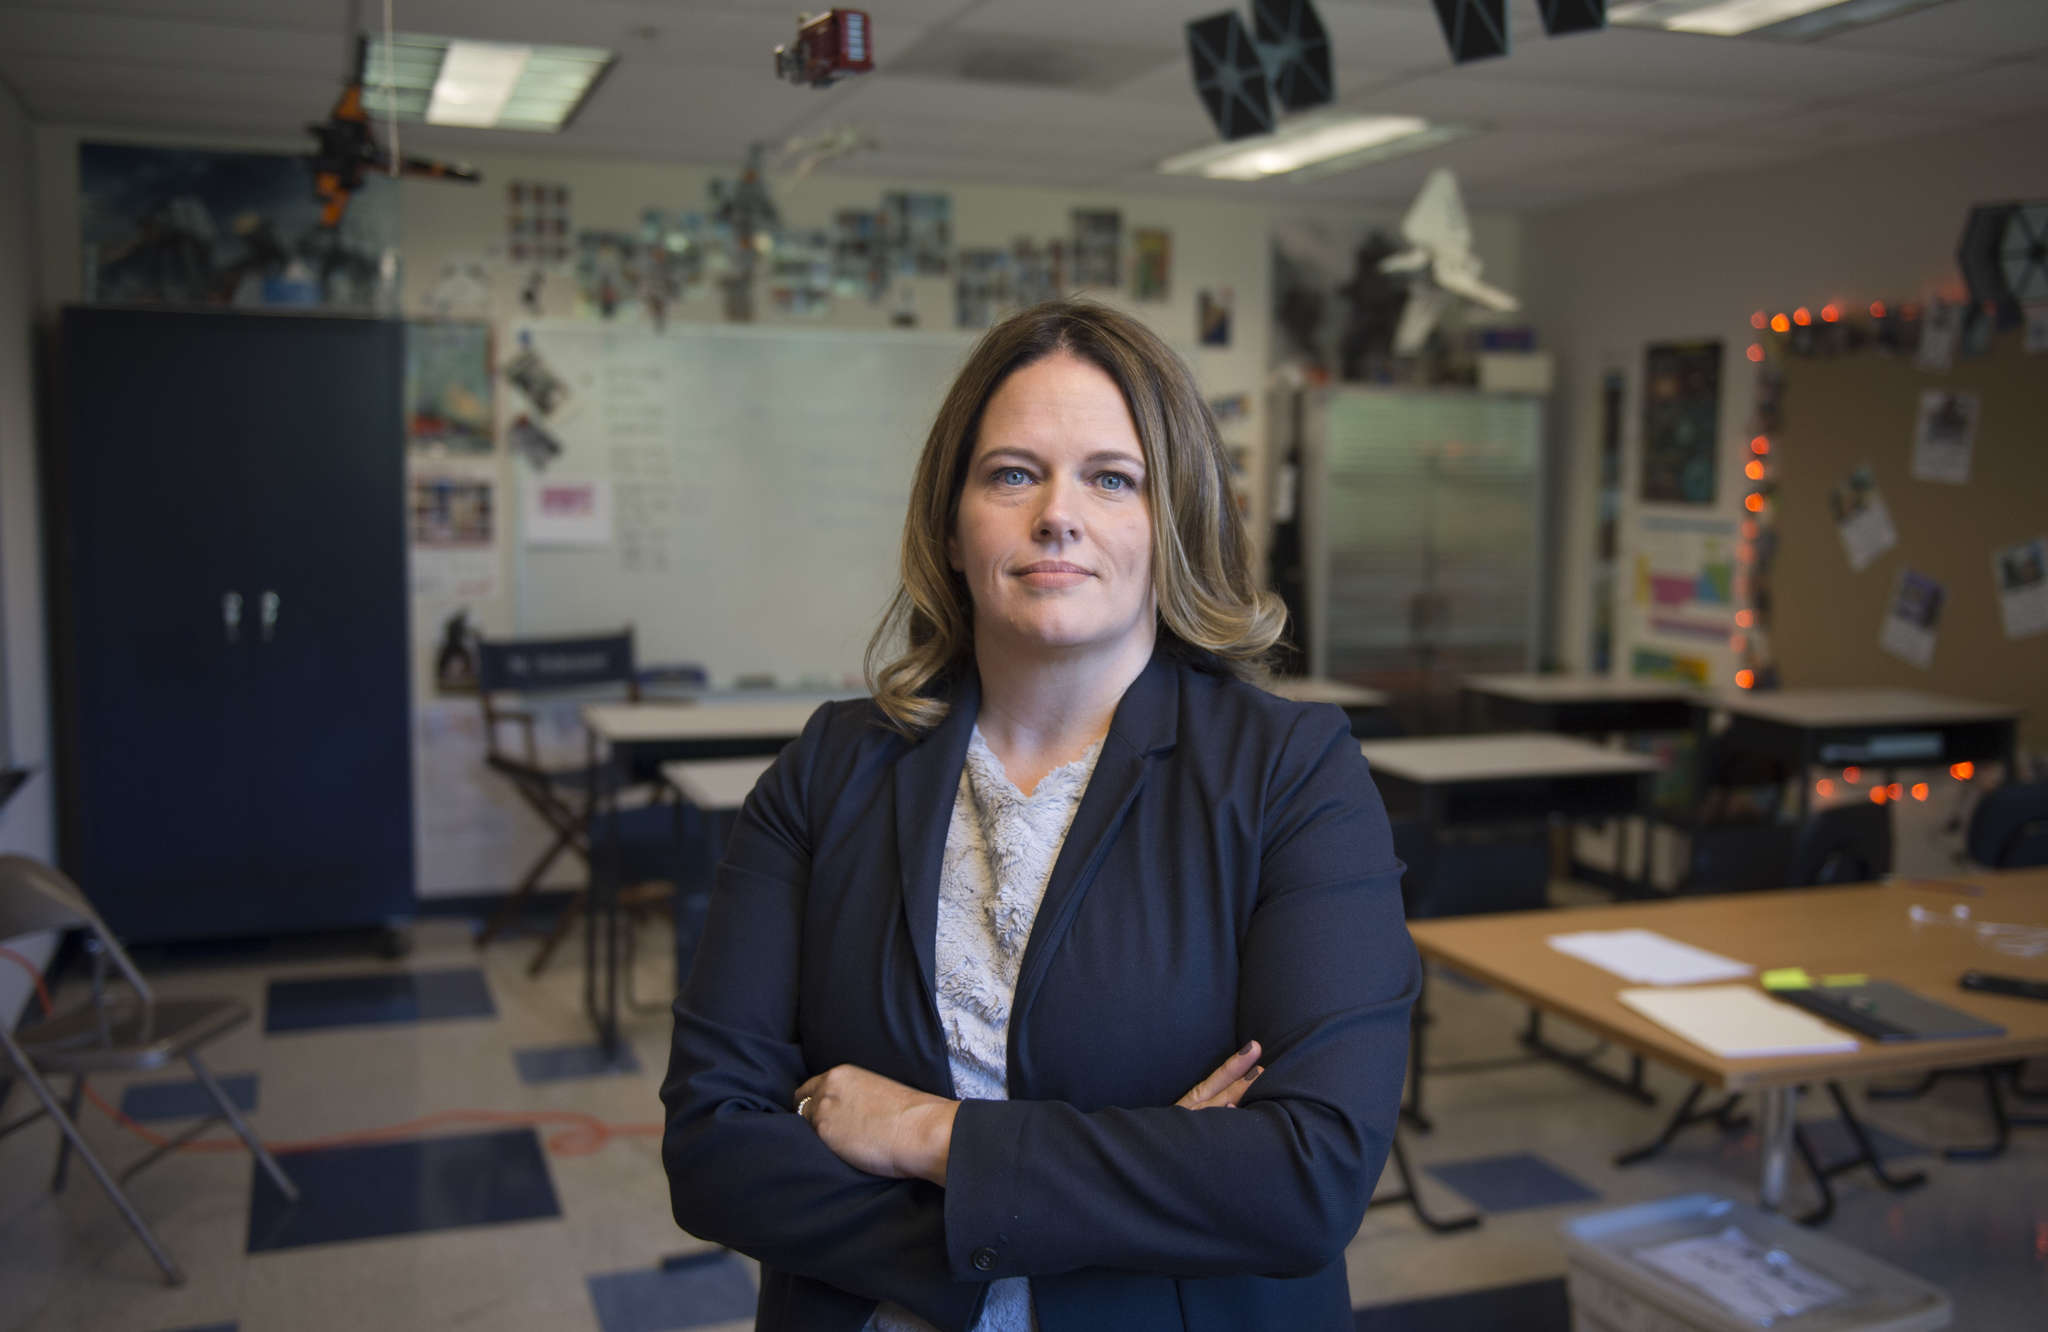 Melissa Bilash, founder of the Grayson School in Broomall, one of 20 finalists in Stellar StartUps. The Grayson School is designed for gifted learners.